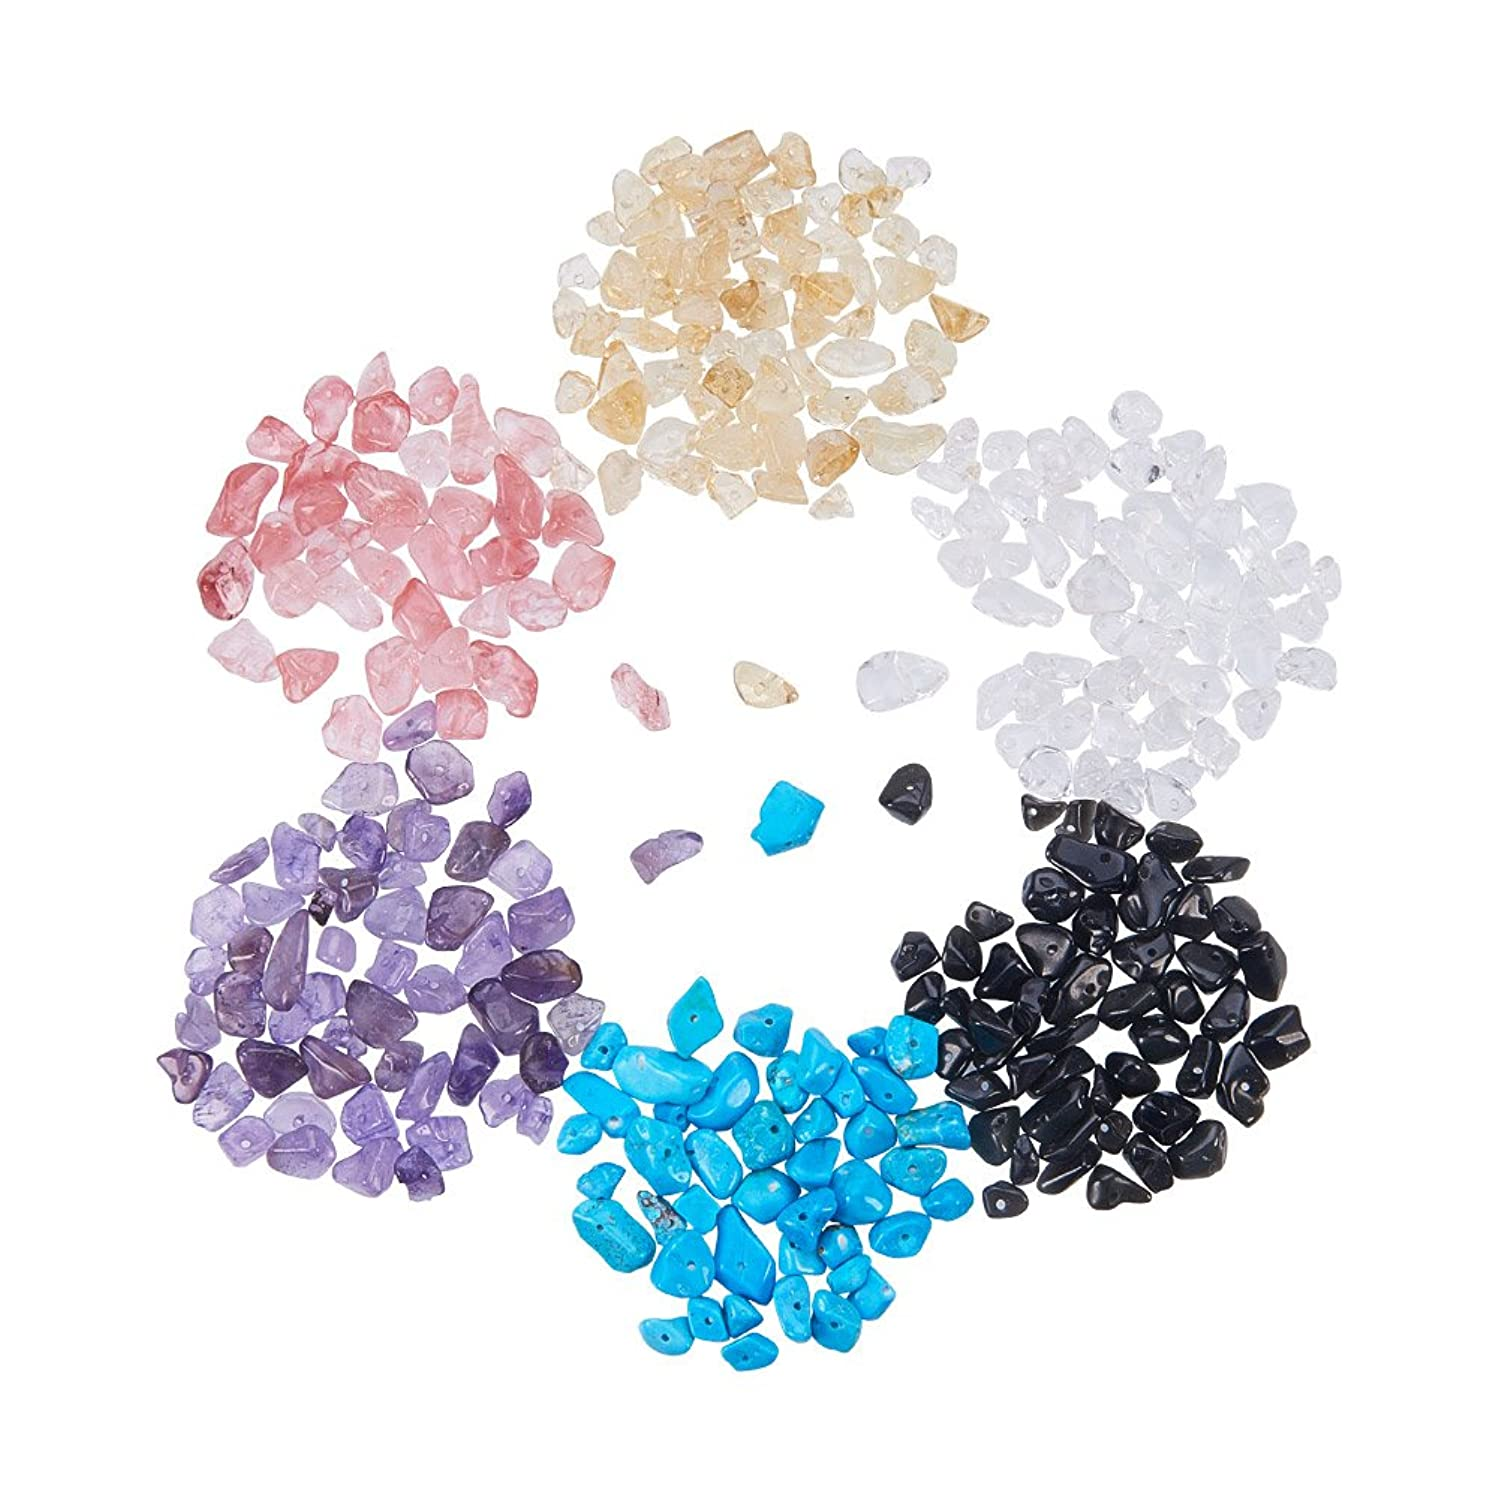 PandaHall Elite 1 Box Chip Gemstone Beads Crushed Pieces Stone Length 3-8mm for Jewelry Making 8 Styles